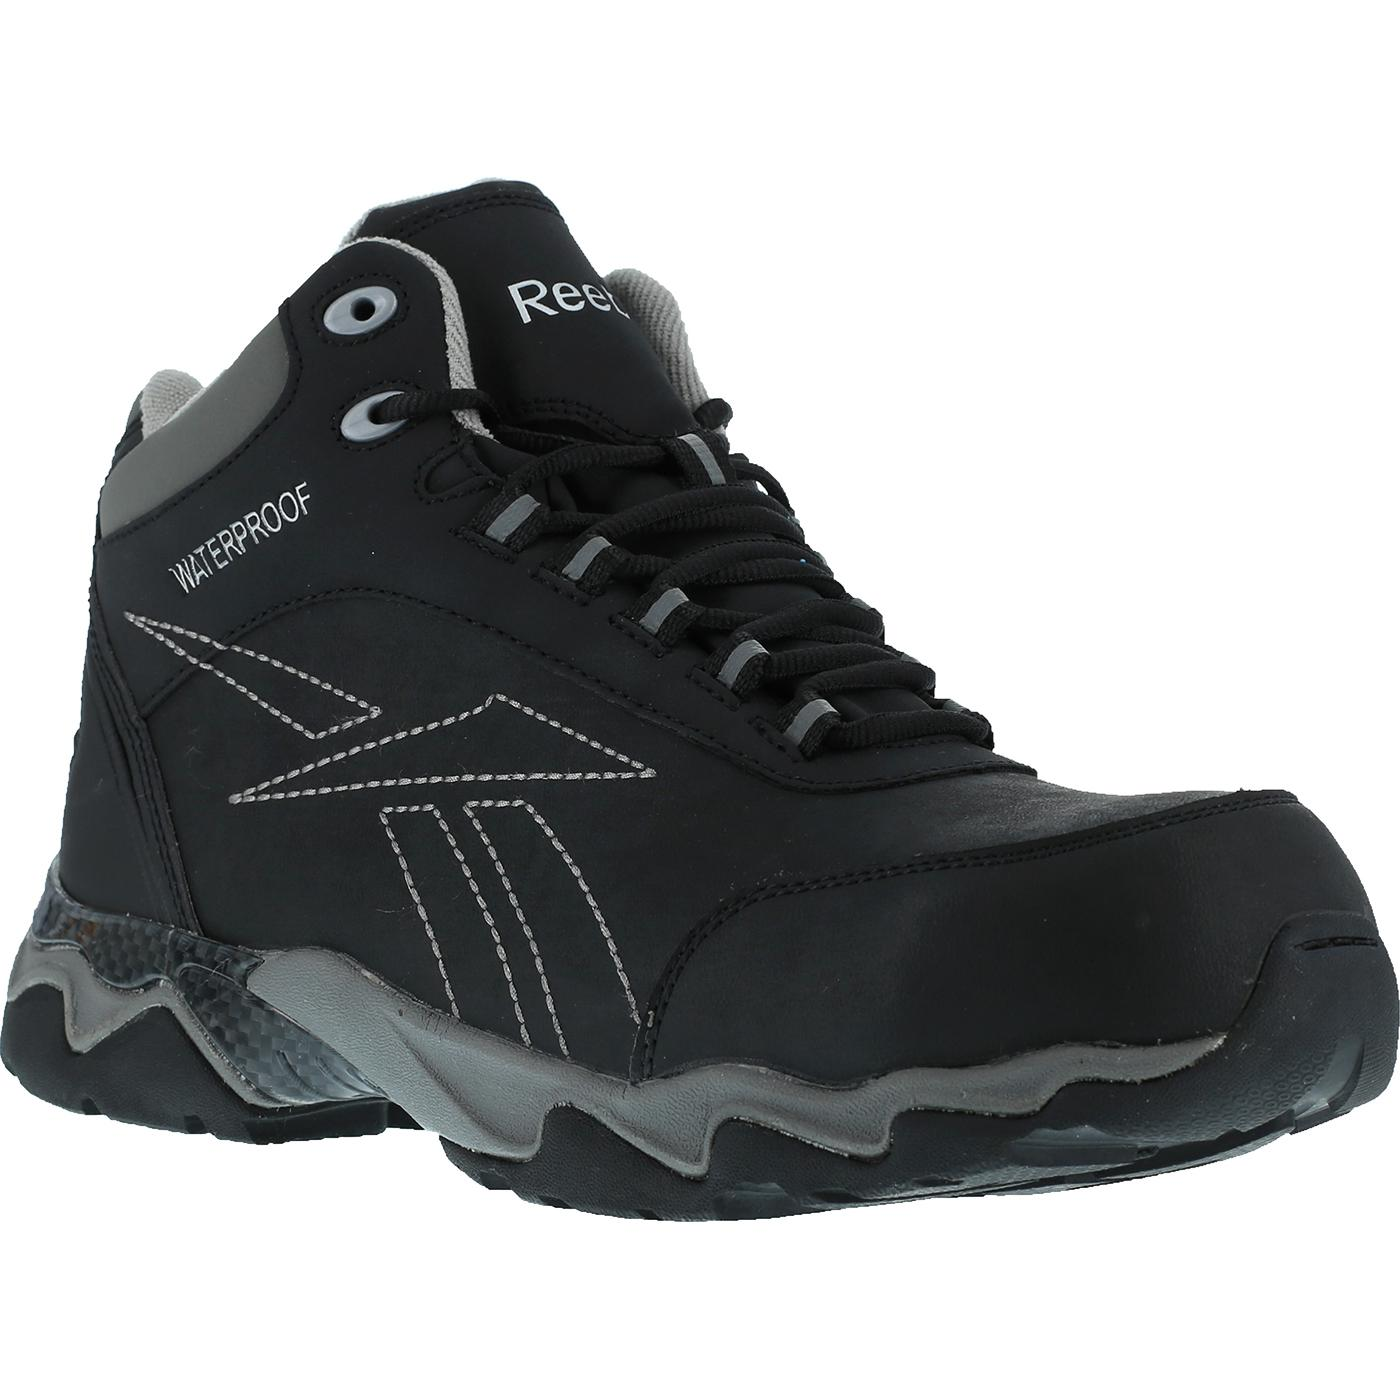 Reebok Beamer Composite Toe Waterproof Work Hiker, , large